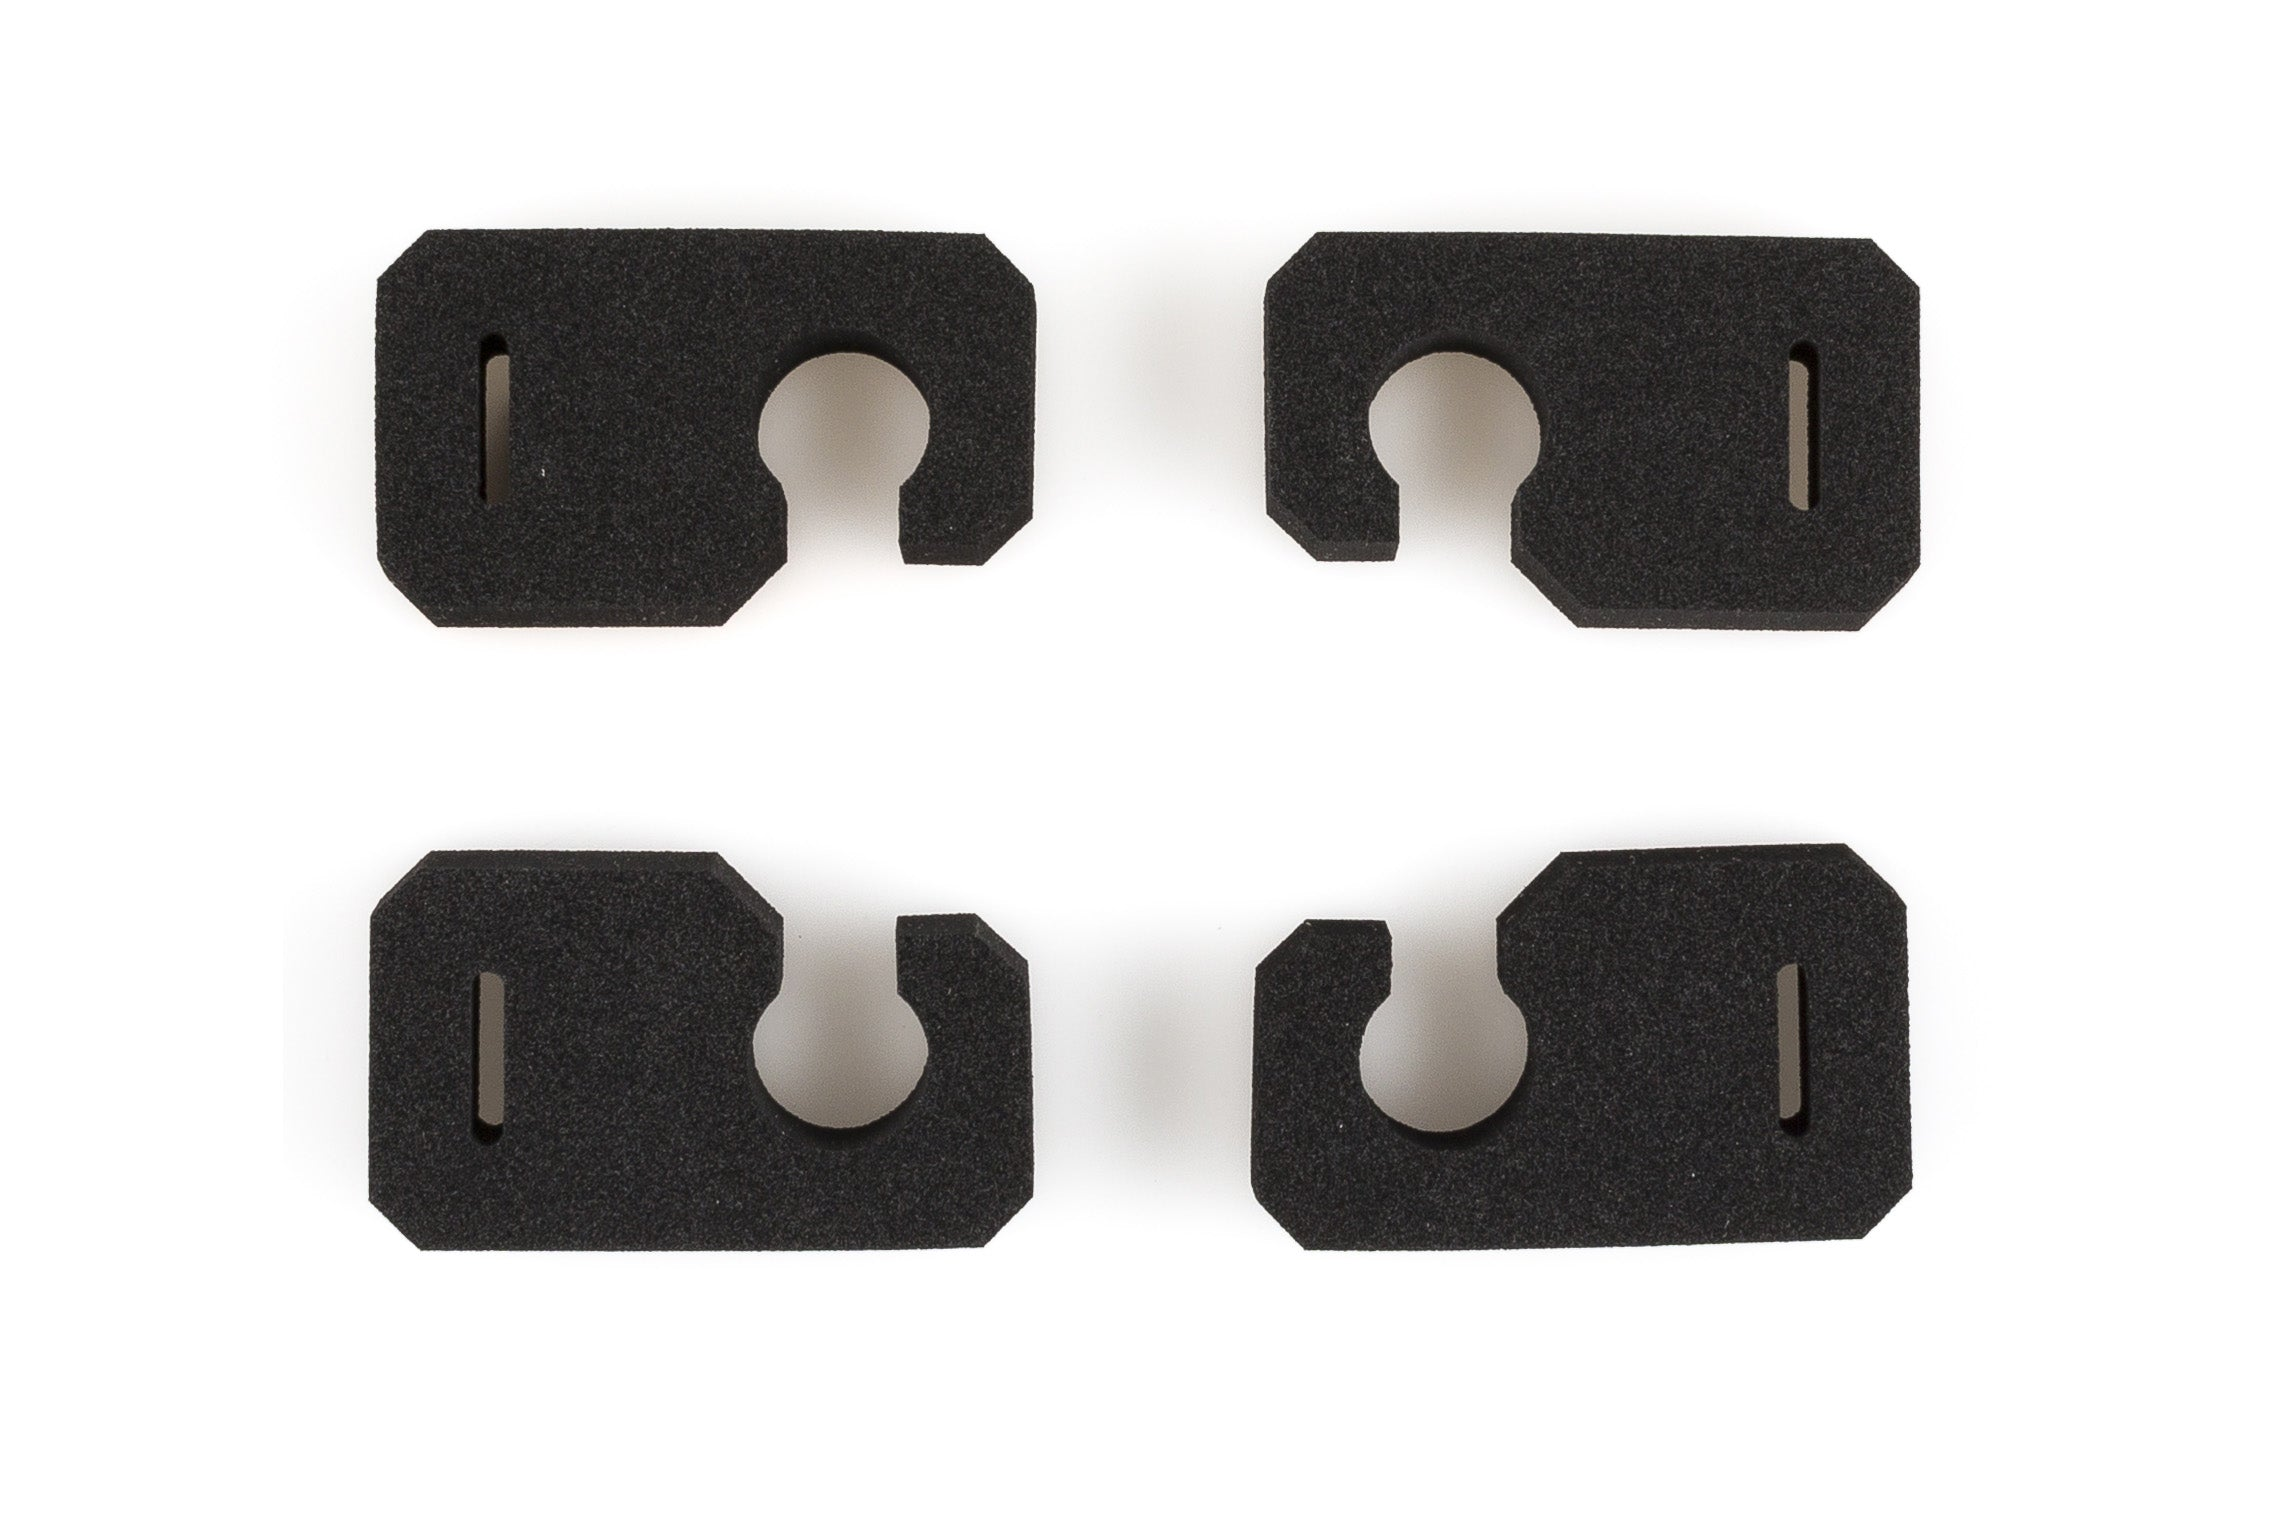 Replacement folding props holders for DJI Inspire 1/Matrice 100 drone